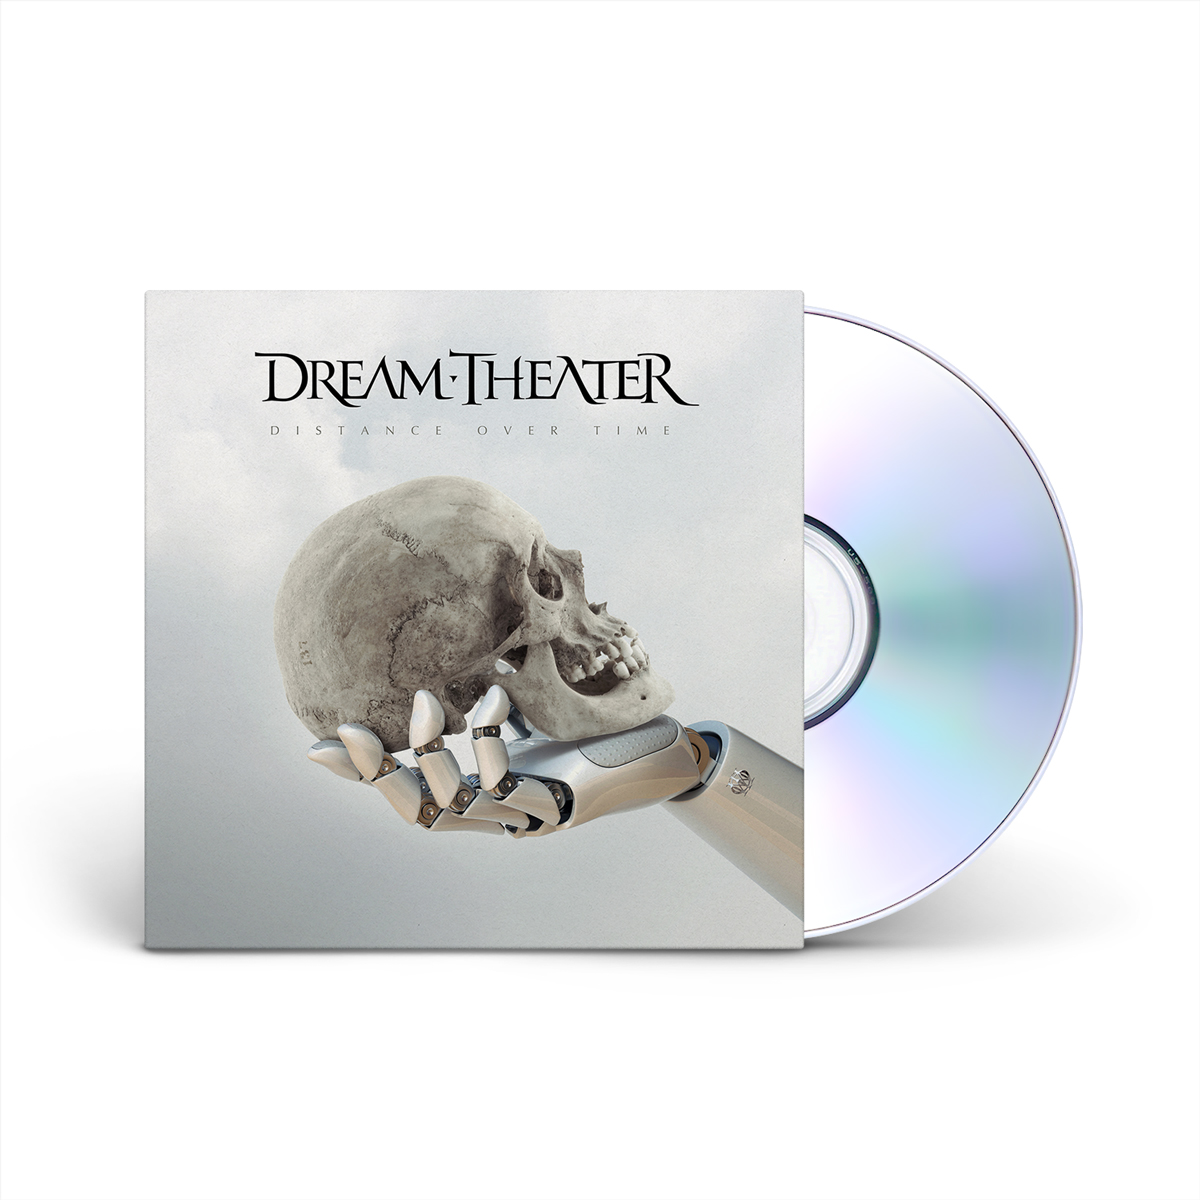 Dream Theater - Distance Over Time (Digipak) CD